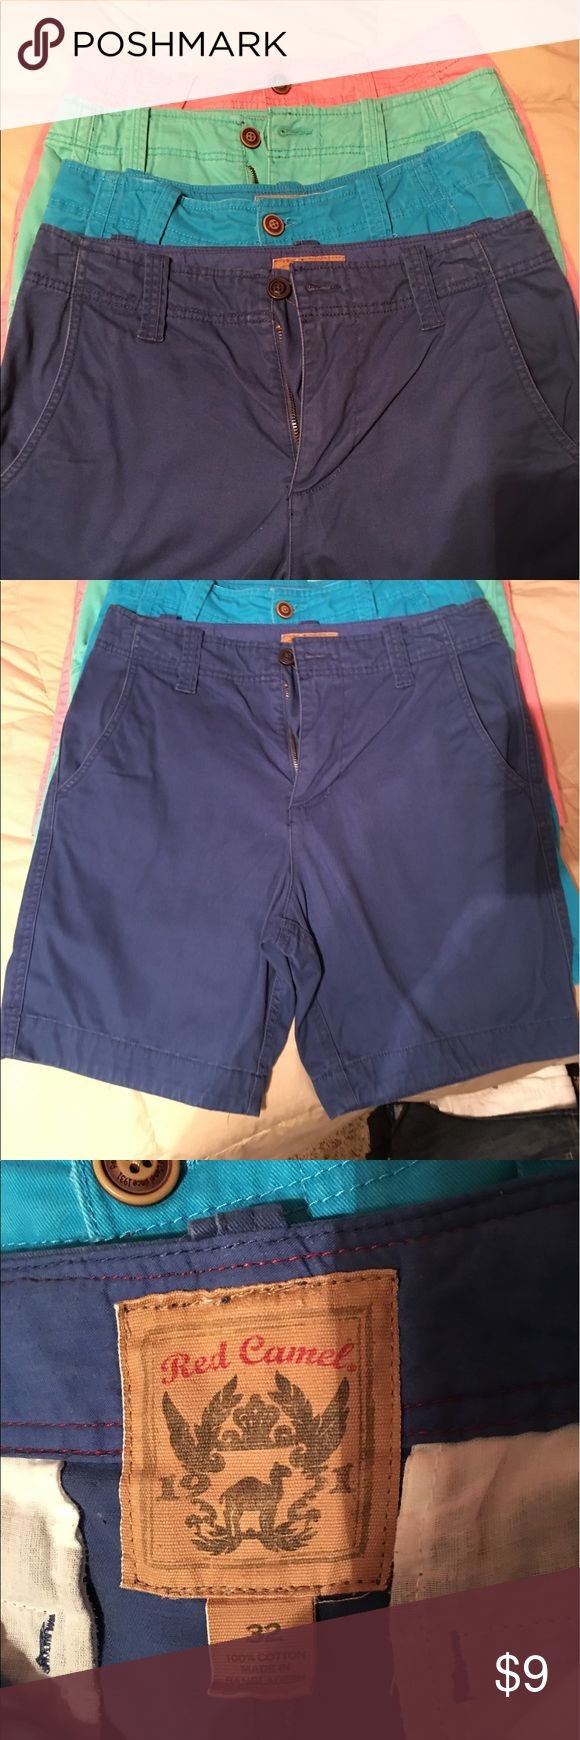 "Pink- Men's Red Camel shorts One pair PINK of Red Camel Chino flat fronted short. 9 1/2"" inseam. Smoke free pet free home. Wore very few times. Nice color pink. Or you can bundle with the other colors in my closet. No spots or stains. Red Camel Shorts Flat Front"